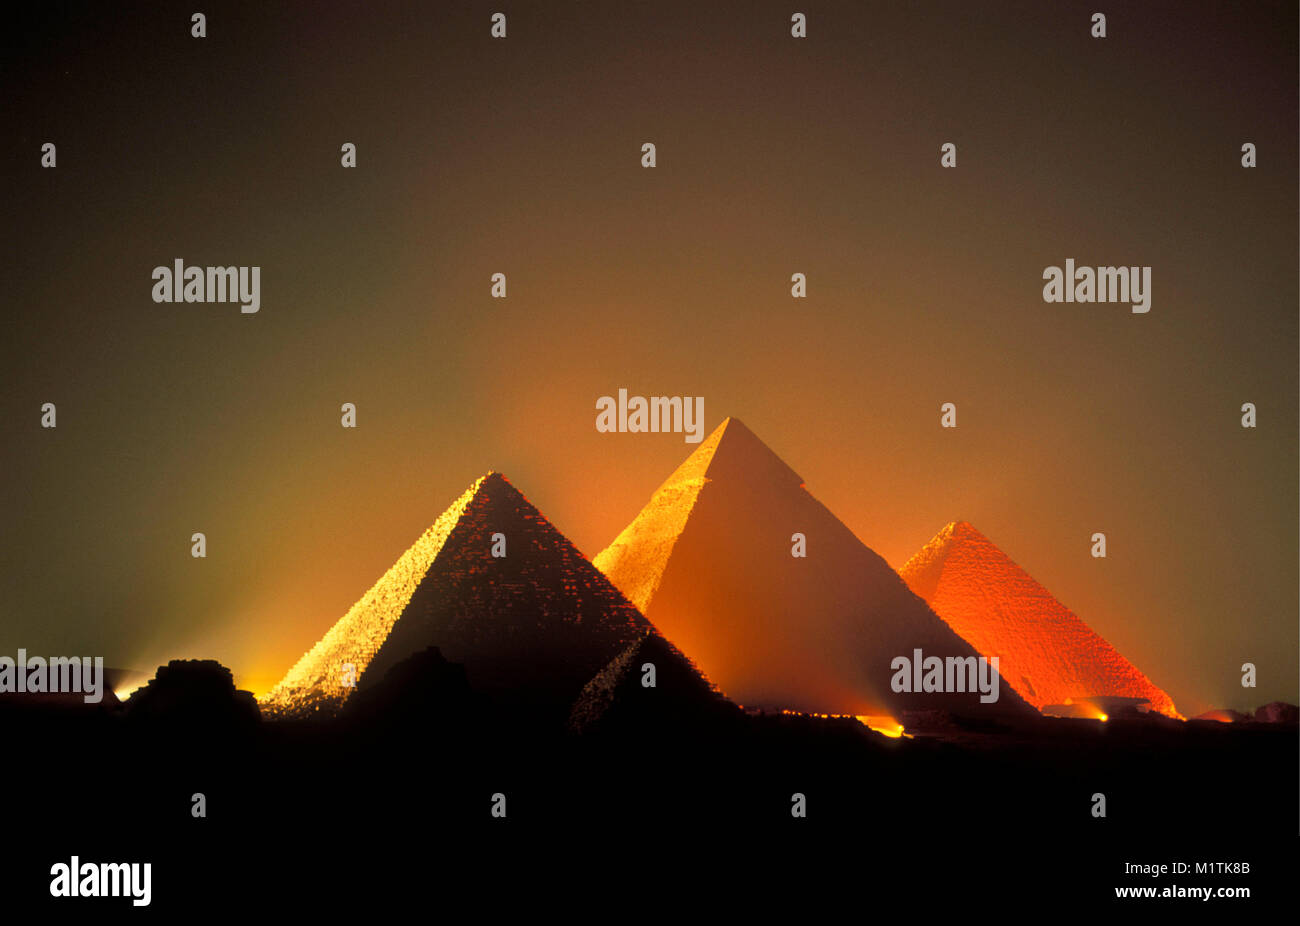 giza sound and light show stock photos giza sound and light show stock images alamy. Black Bedroom Furniture Sets. Home Design Ideas